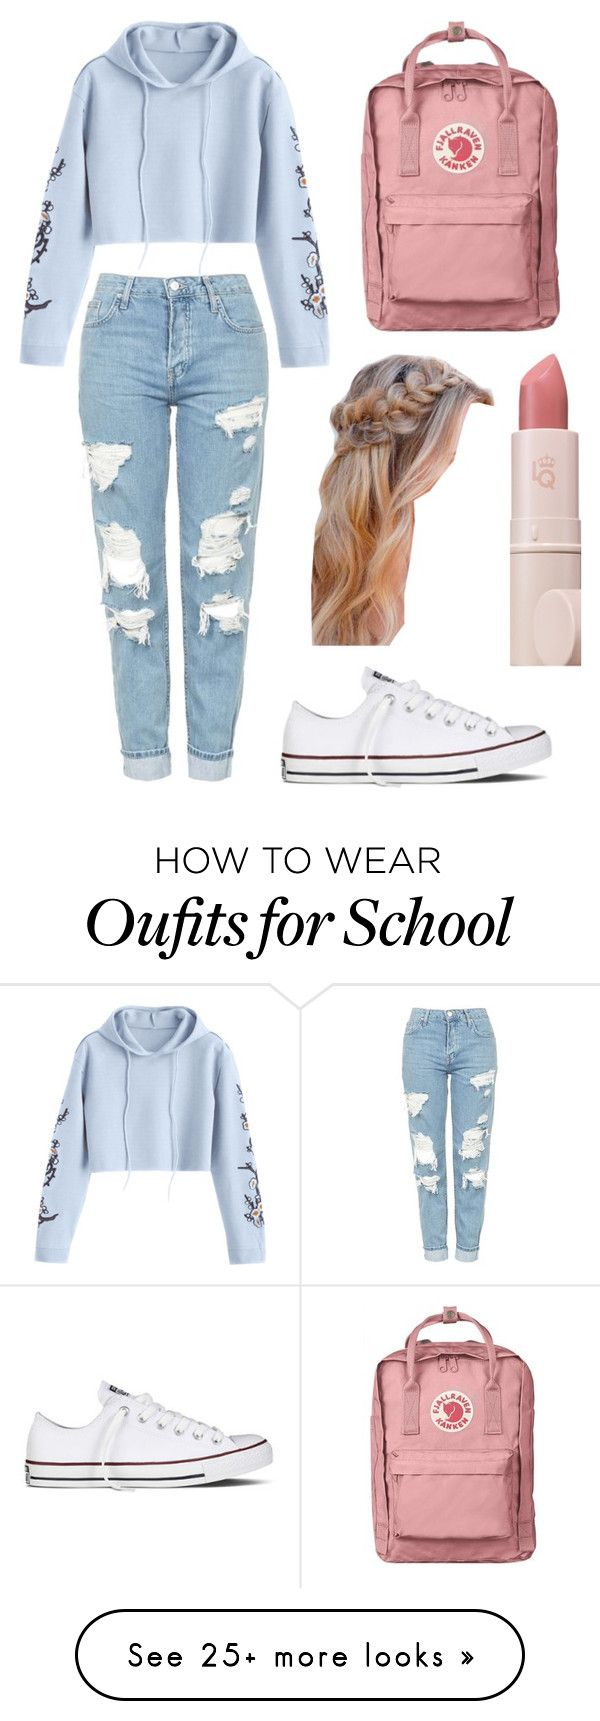 """""""School Chic """" by agronstyles on Polyvore featuring Topshop, Converse and Lipstick Queen"""